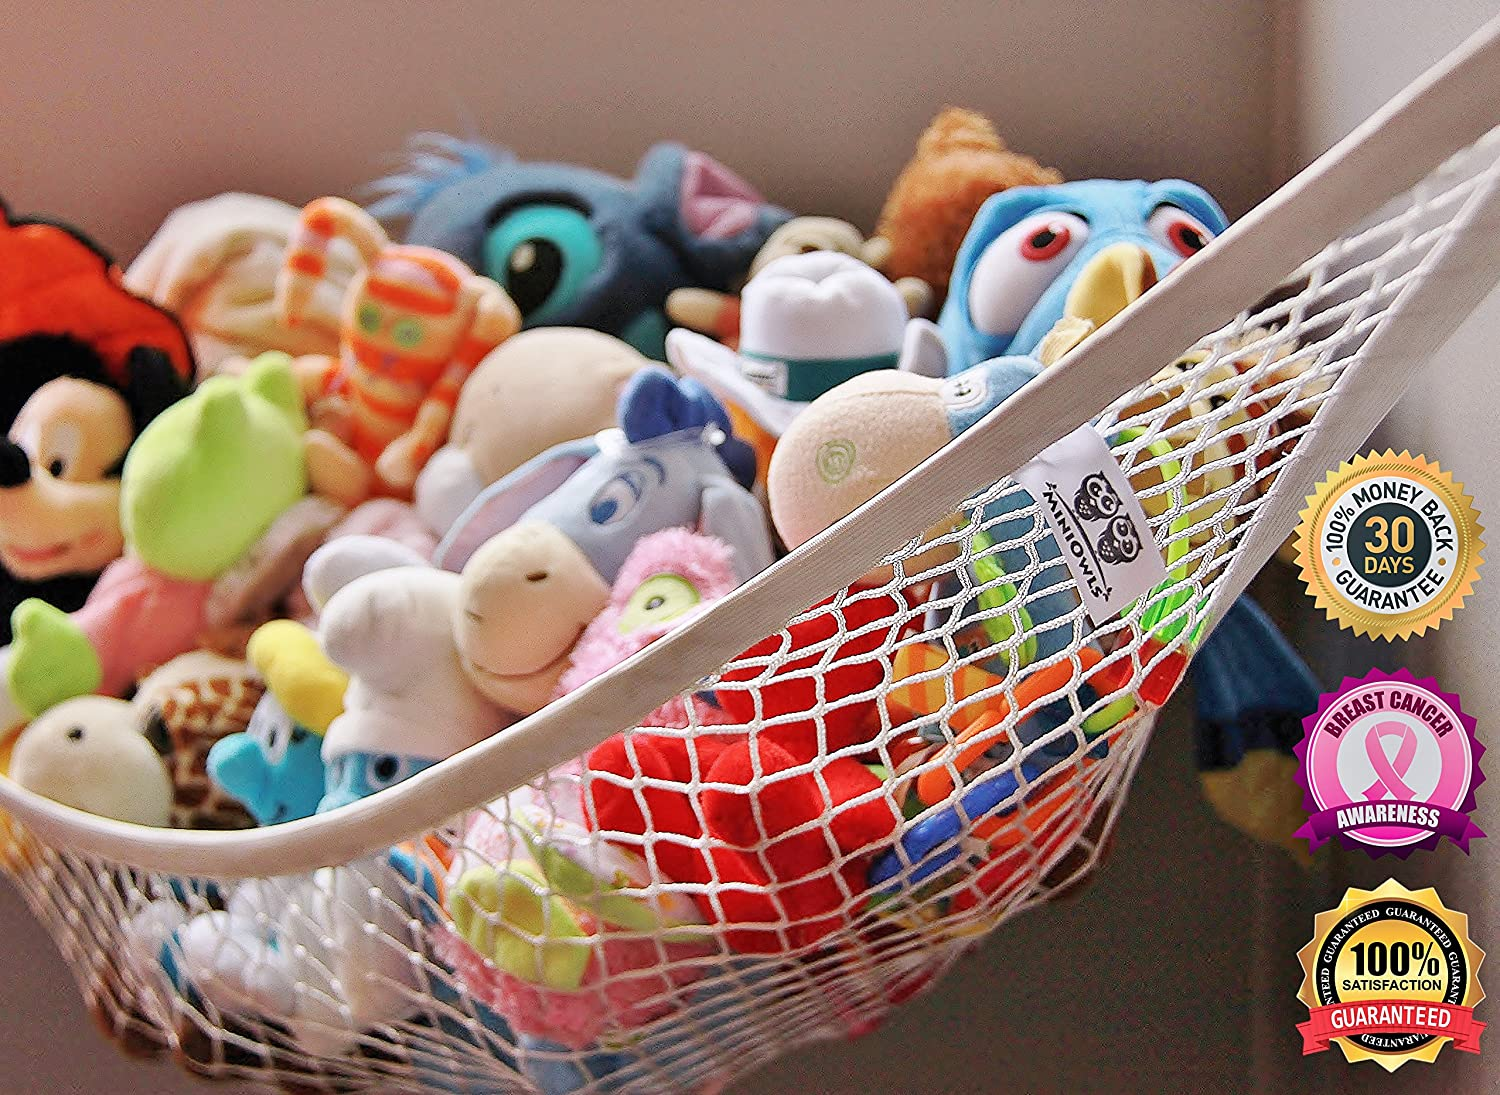 Large Toy Storage Ideas Part - 46: Amazon.com : MiniOwls Toy Storage Hammock Large Organizer White (also Comes  In XL) De-cluttering Solution U0026 Inexpensive Idea For Every Room At Home Or  ...